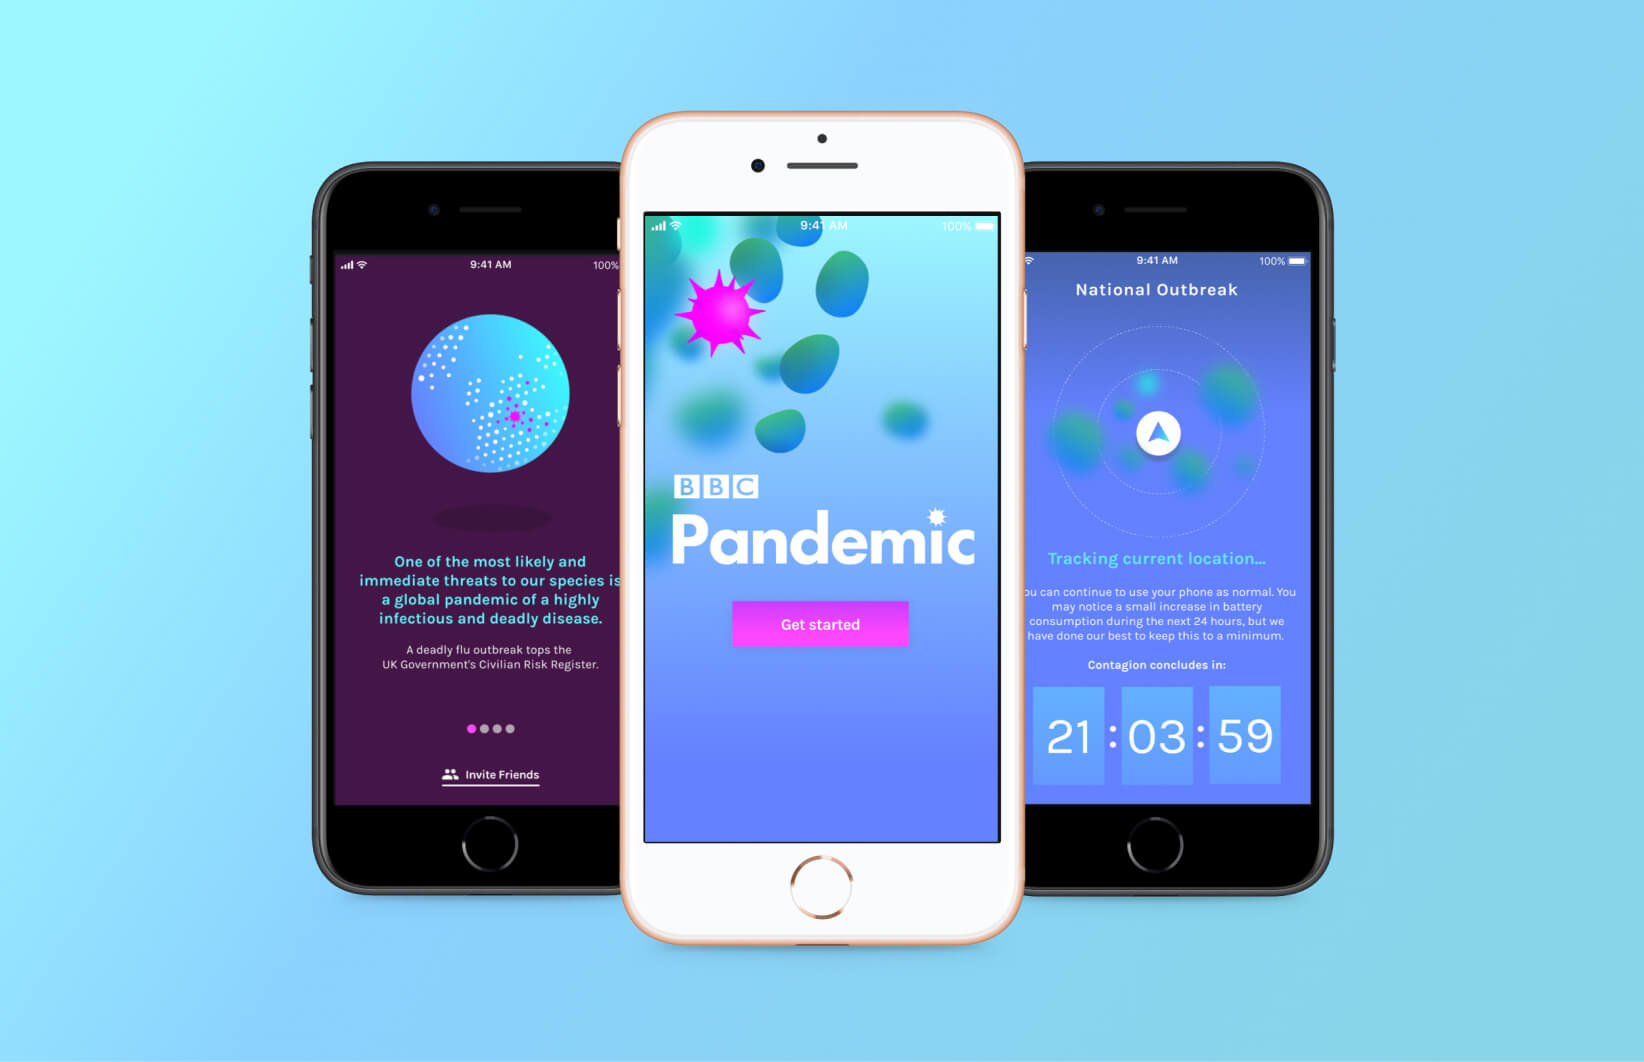 BBC Pandemic Application Design main image